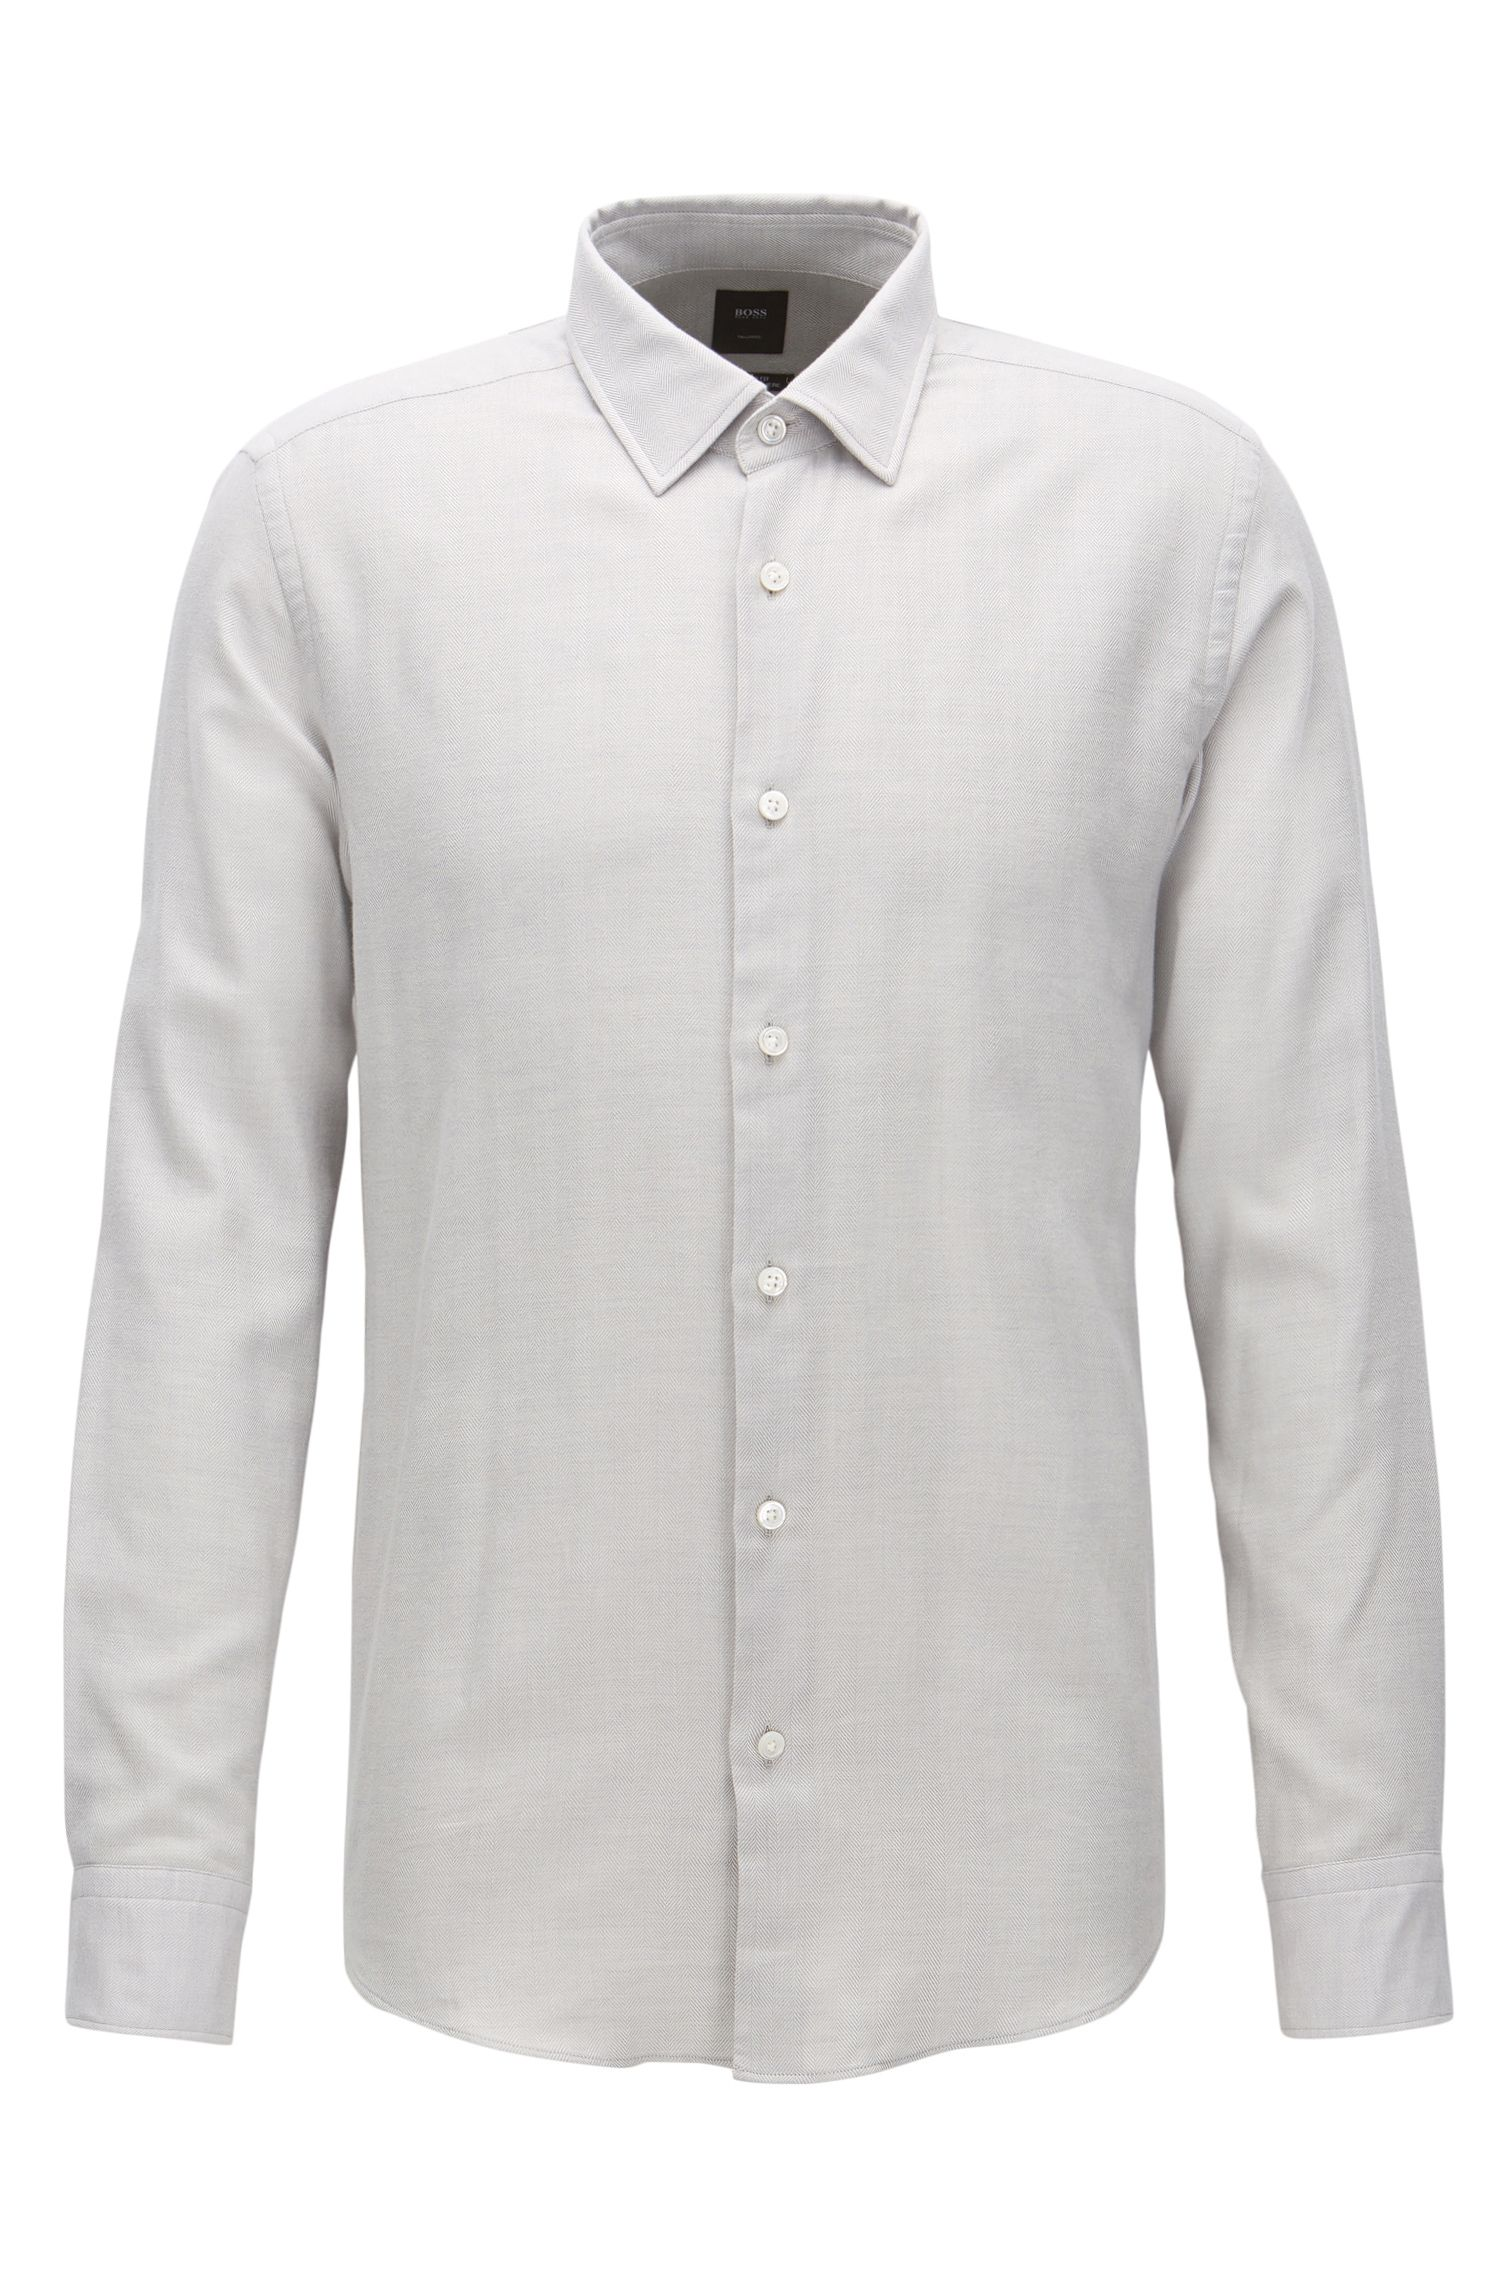 Regular-fit shirt in a herringbone-structure cotton blend